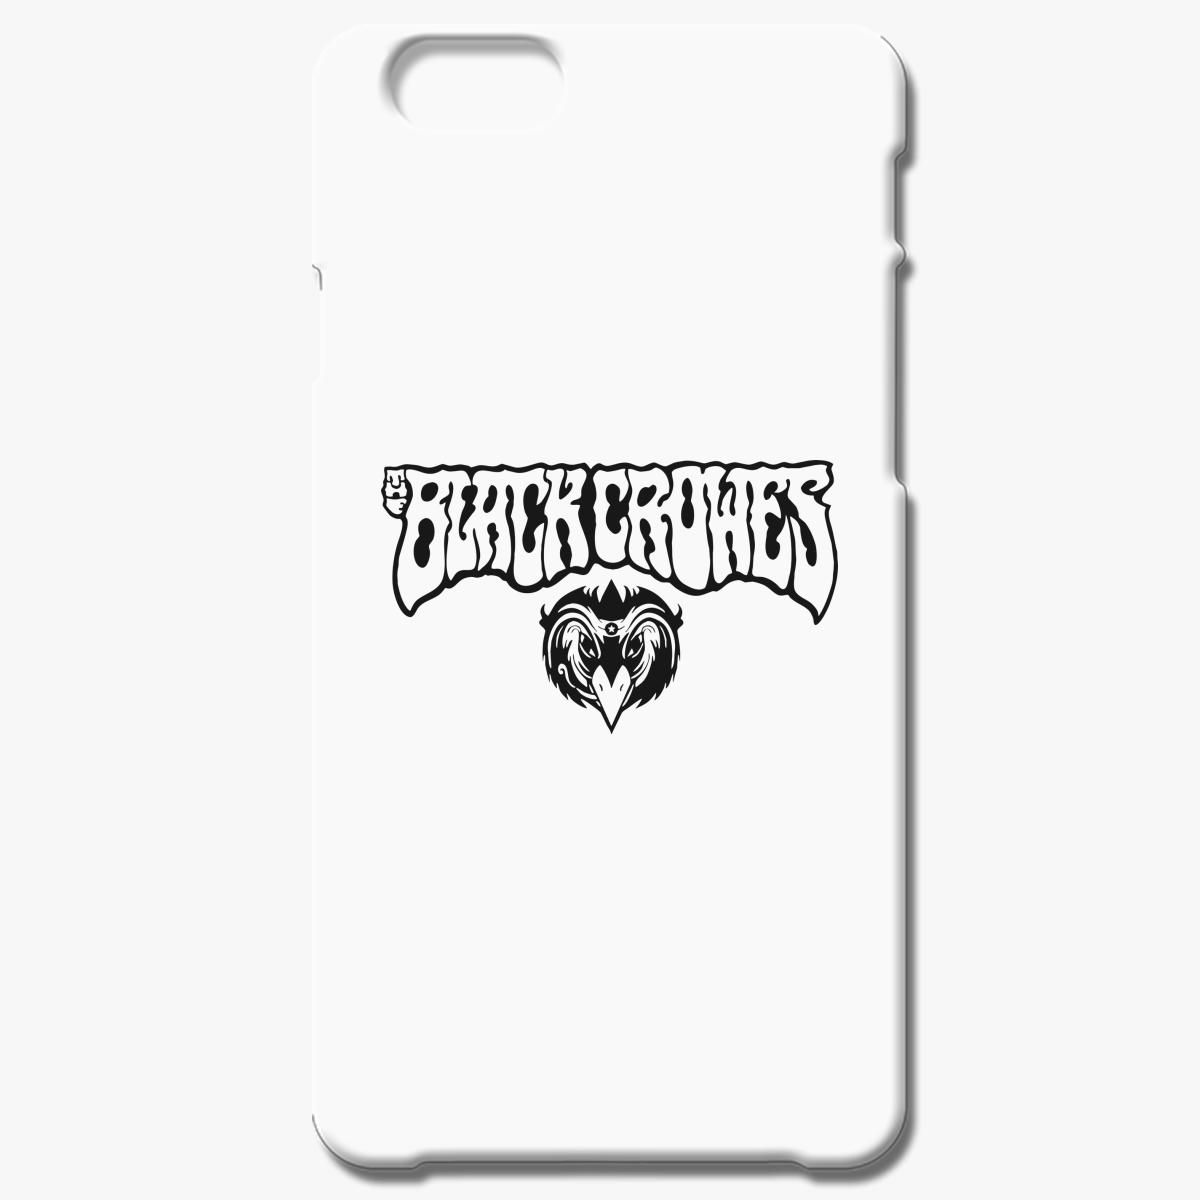 The Black Crowes Iphone 6 6s Case